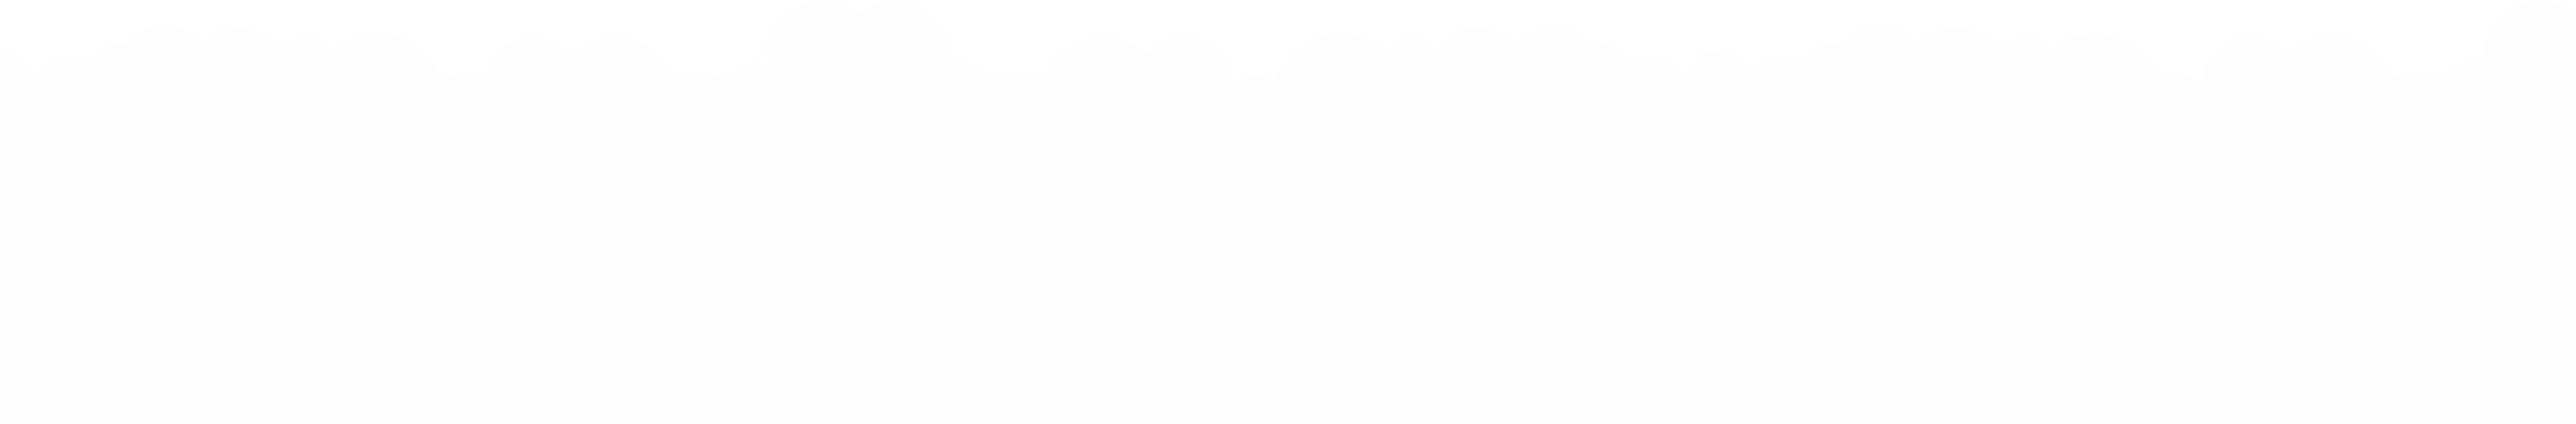 Cloud Background Layer 1